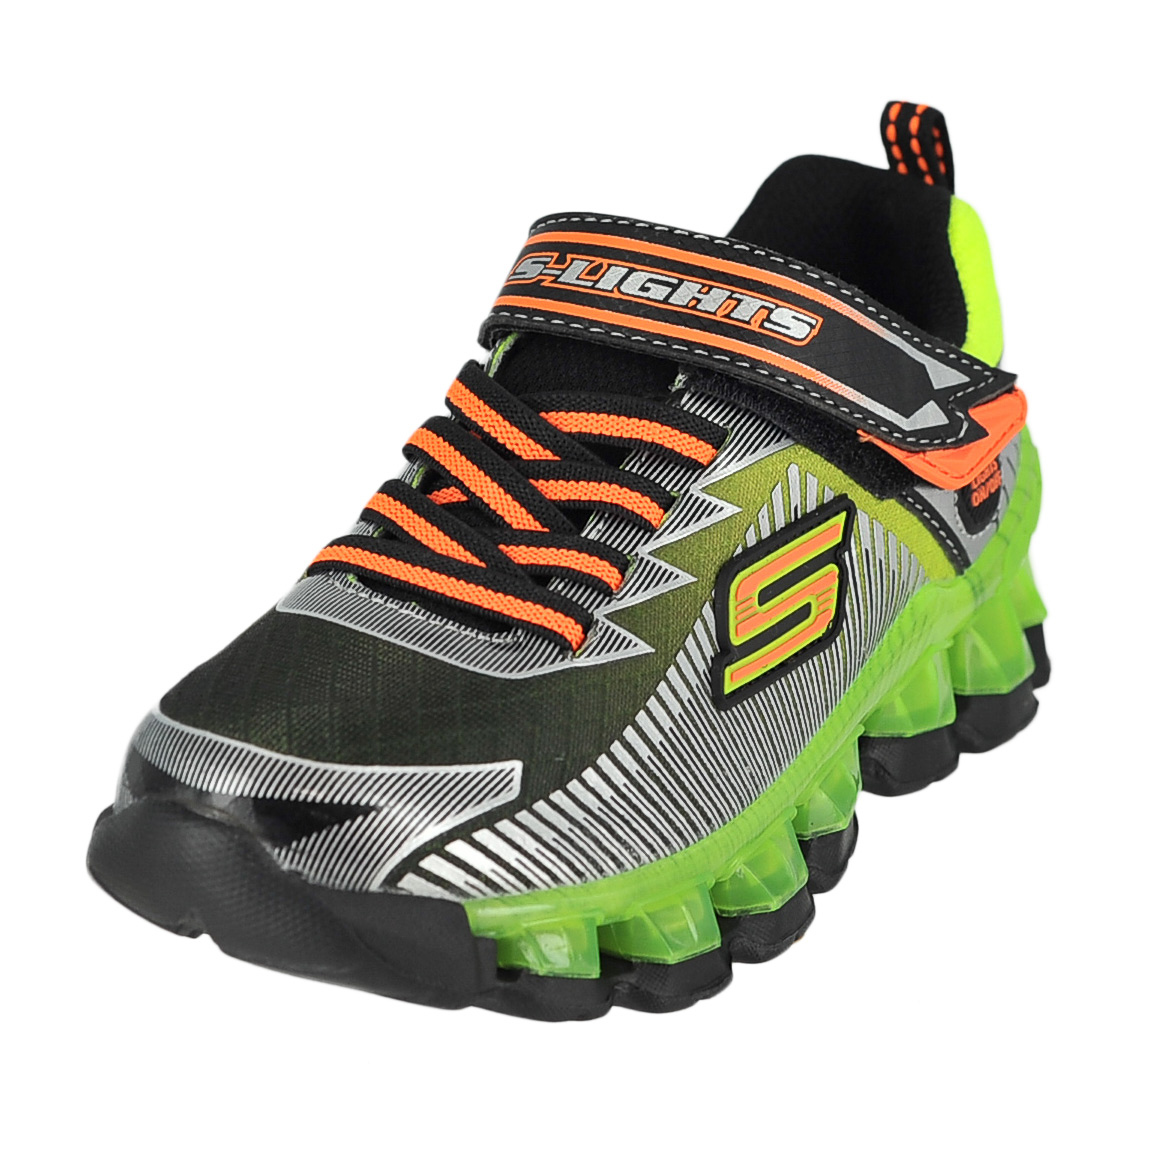 skechers flashpod scoria black lime boys light up sneaker size 1 5m. Black Bedroom Furniture Sets. Home Design Ideas